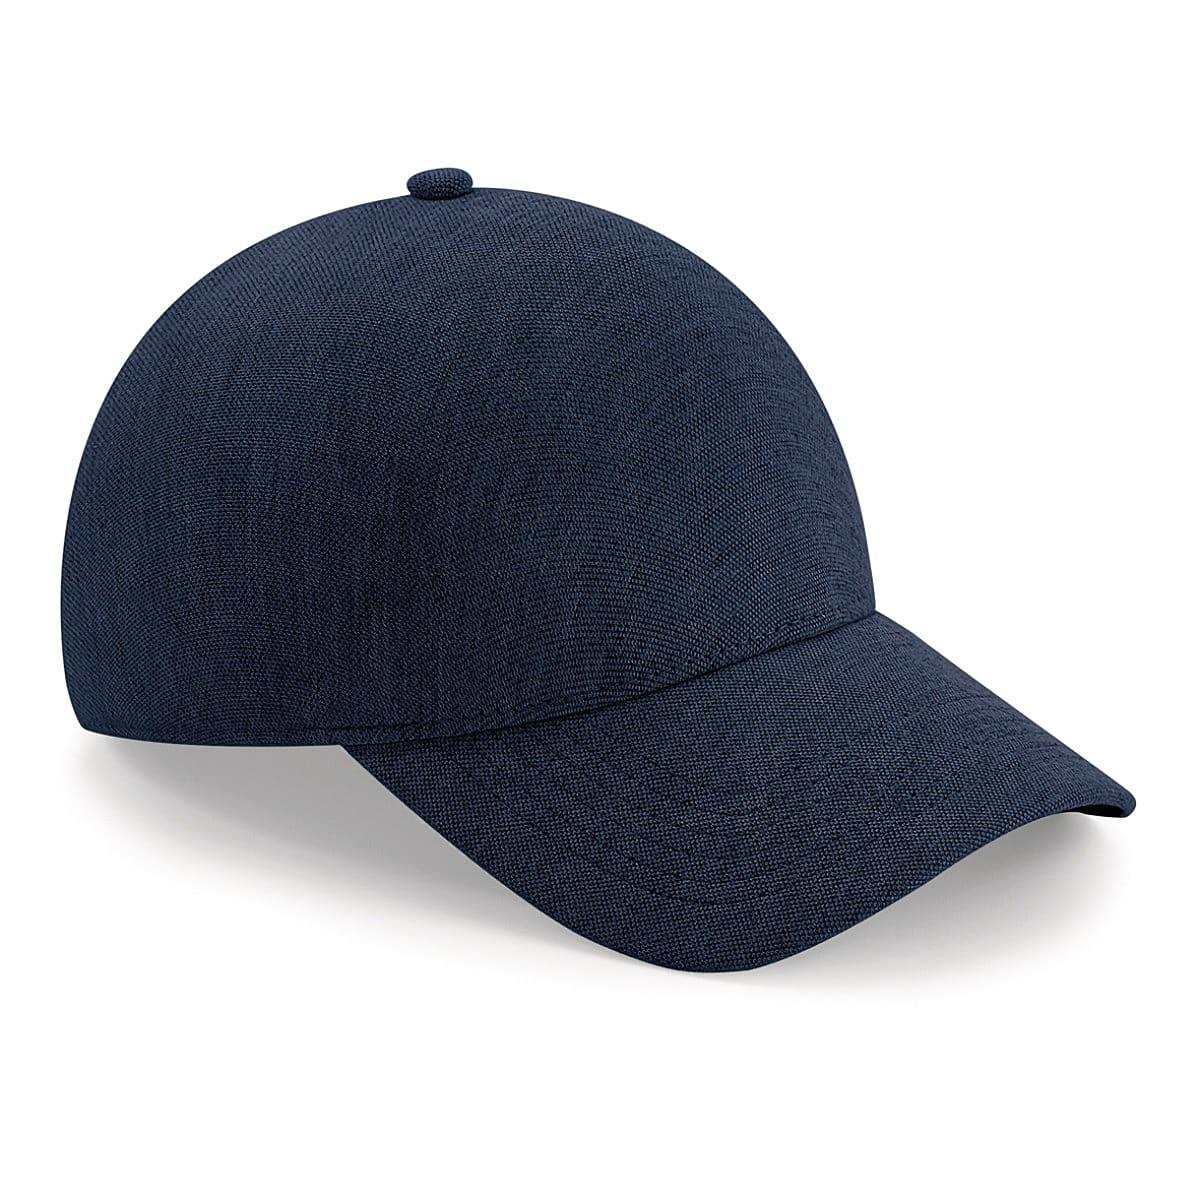 Beechfield Seamless Athleisure Cap in Heather Navy (Product Code: B556)